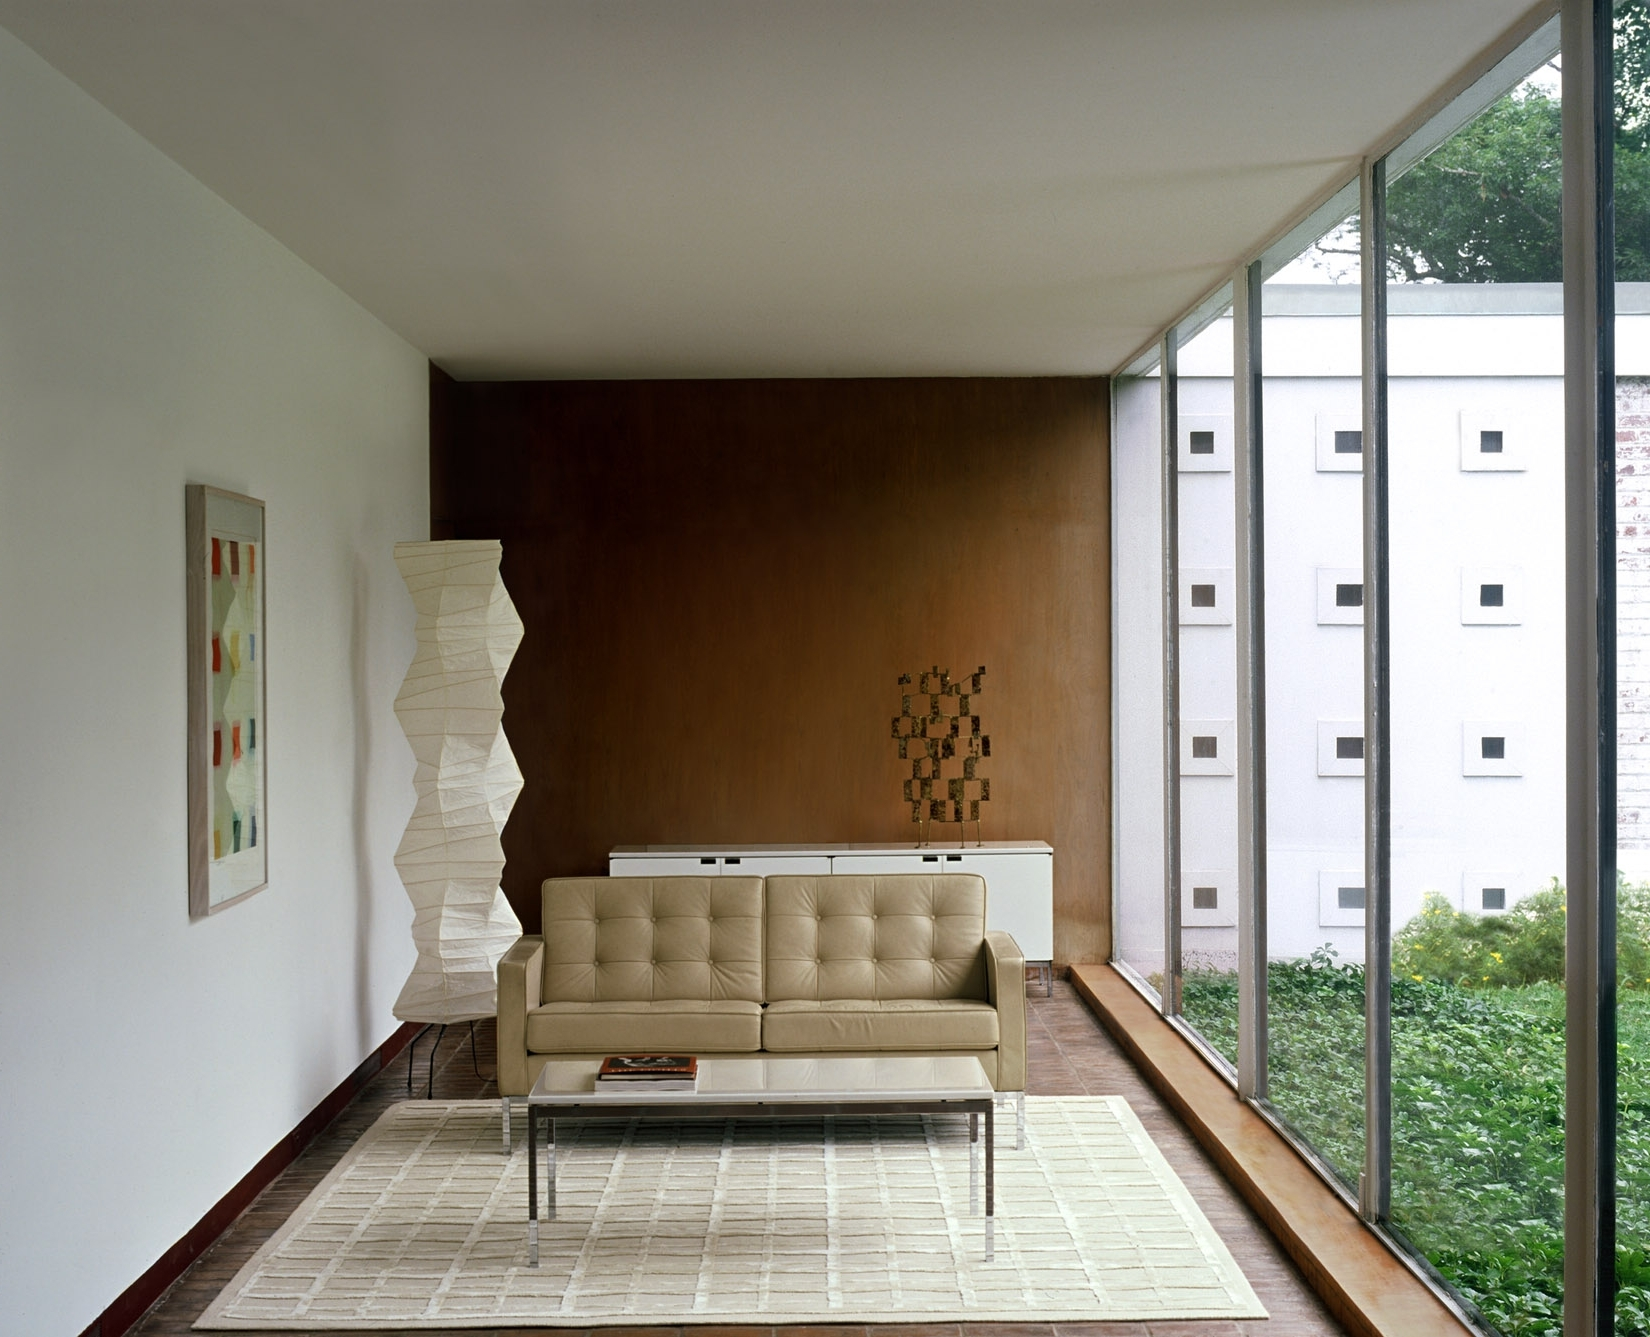 Knoll Pertaining To Florence Knoll Fabric Sofas (Gallery 9 of 15)